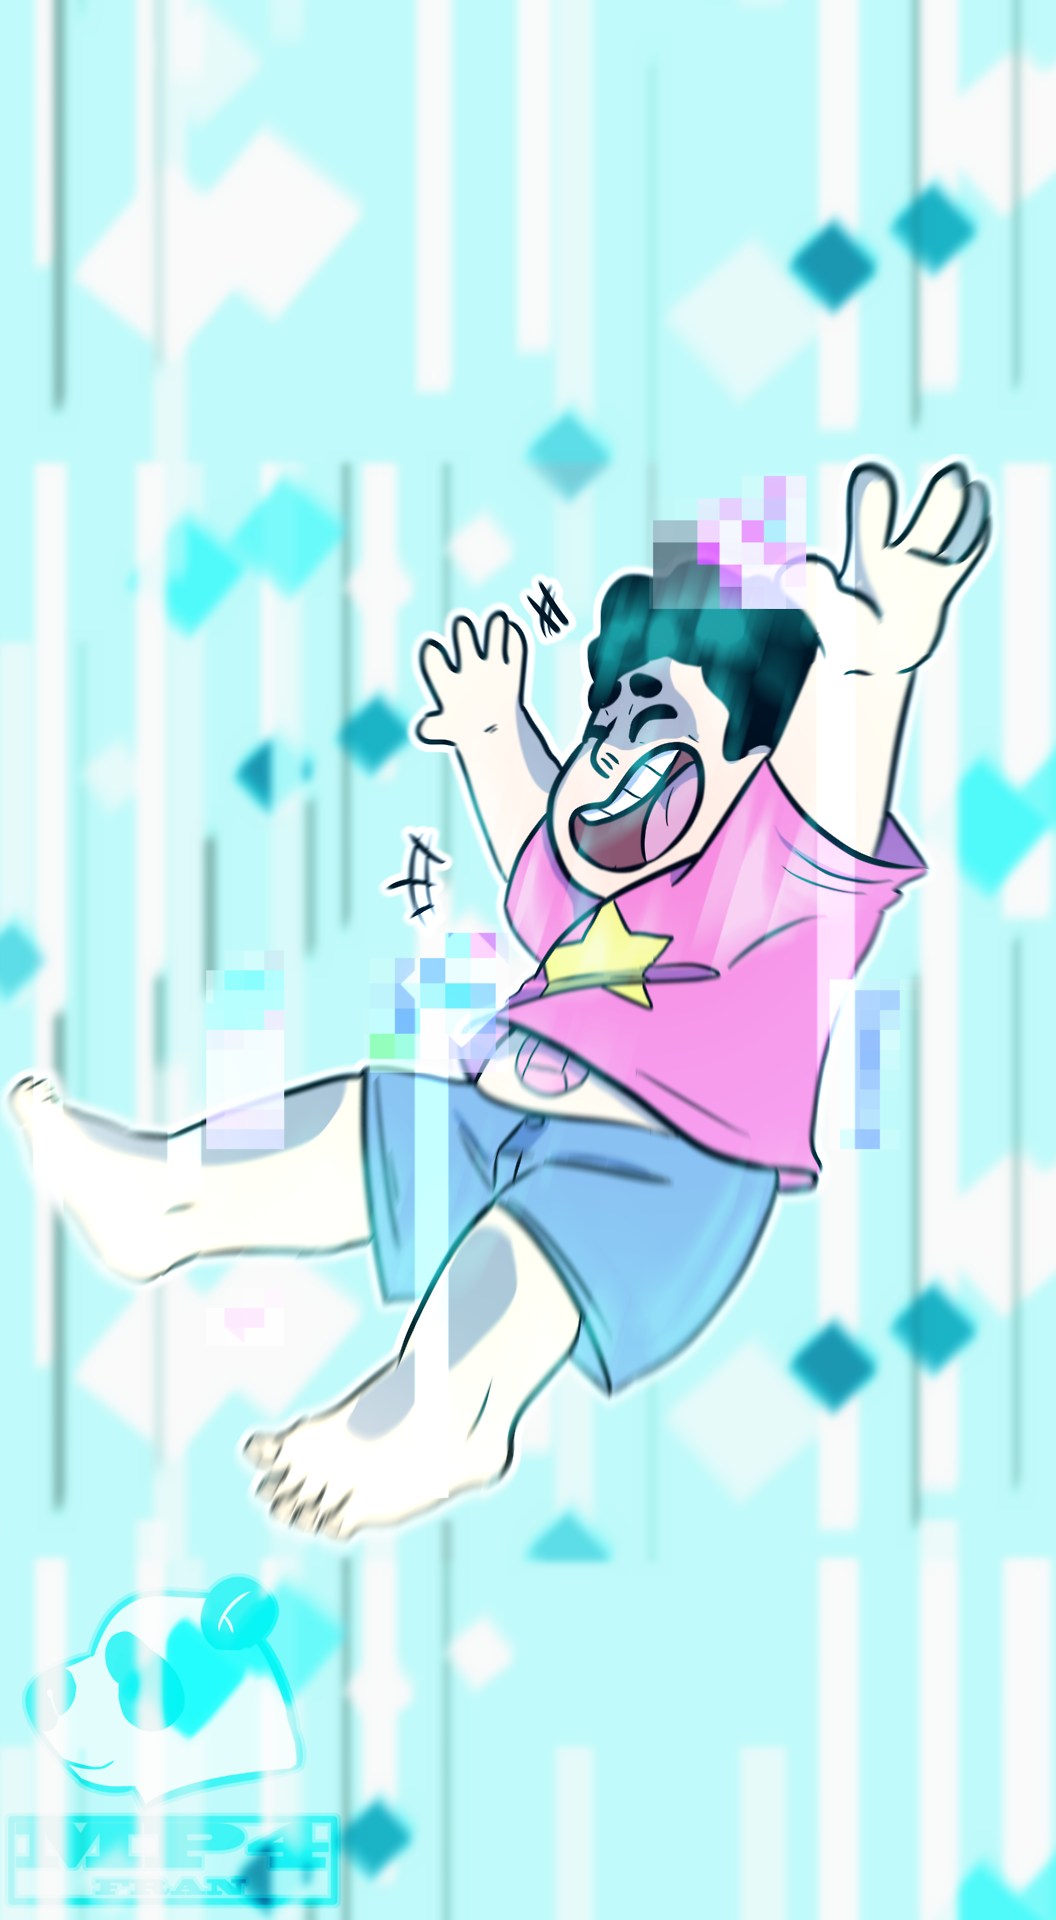 why do i always draw steven barefoot? because he always wears gosh darn flip flops and i hate drawing them im pretty sure he would always lose them, especially when he goes on missions with the cg